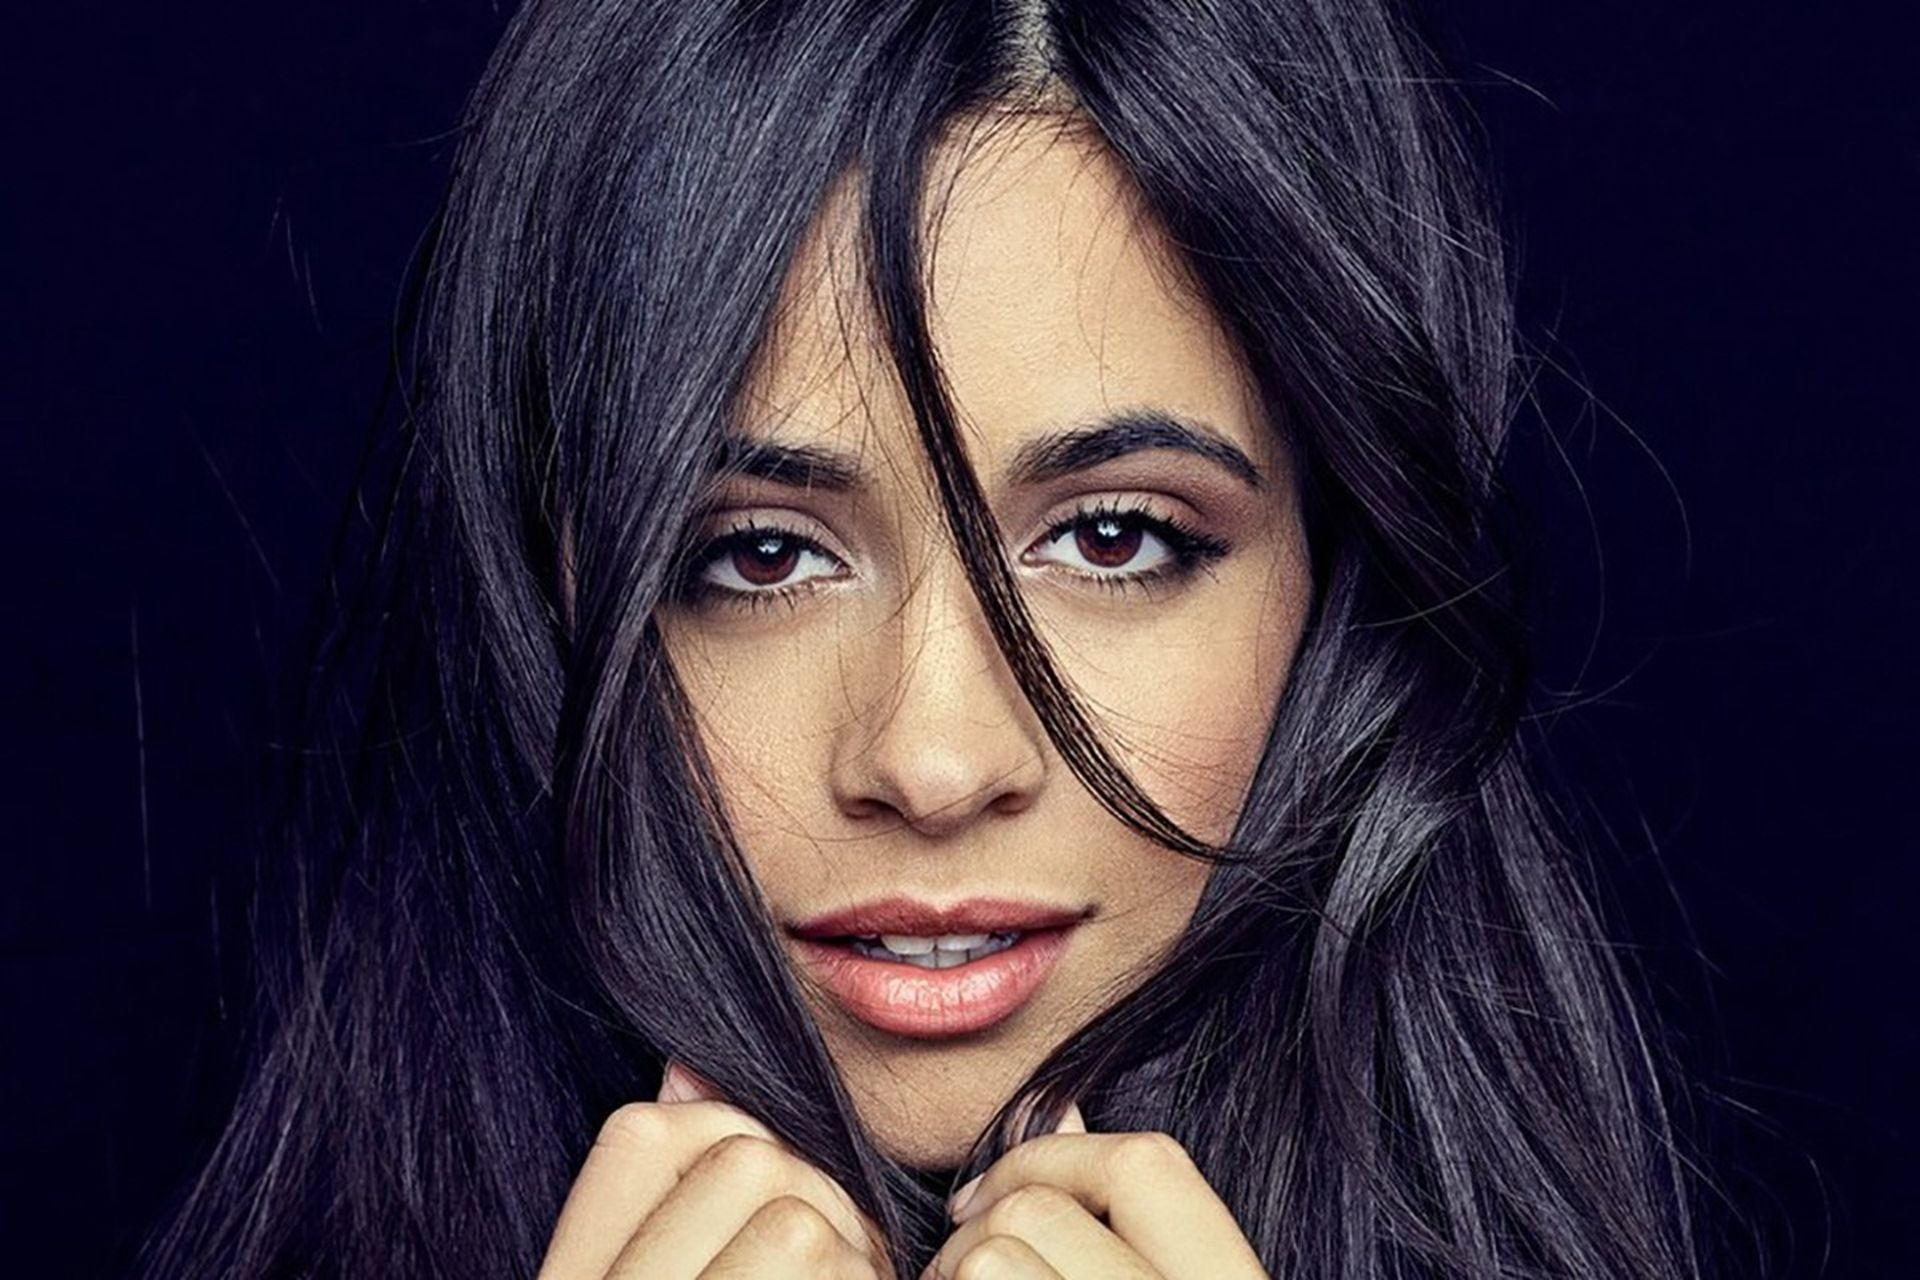 Camila Cabello Background Wallpaper 14971 - Baltana